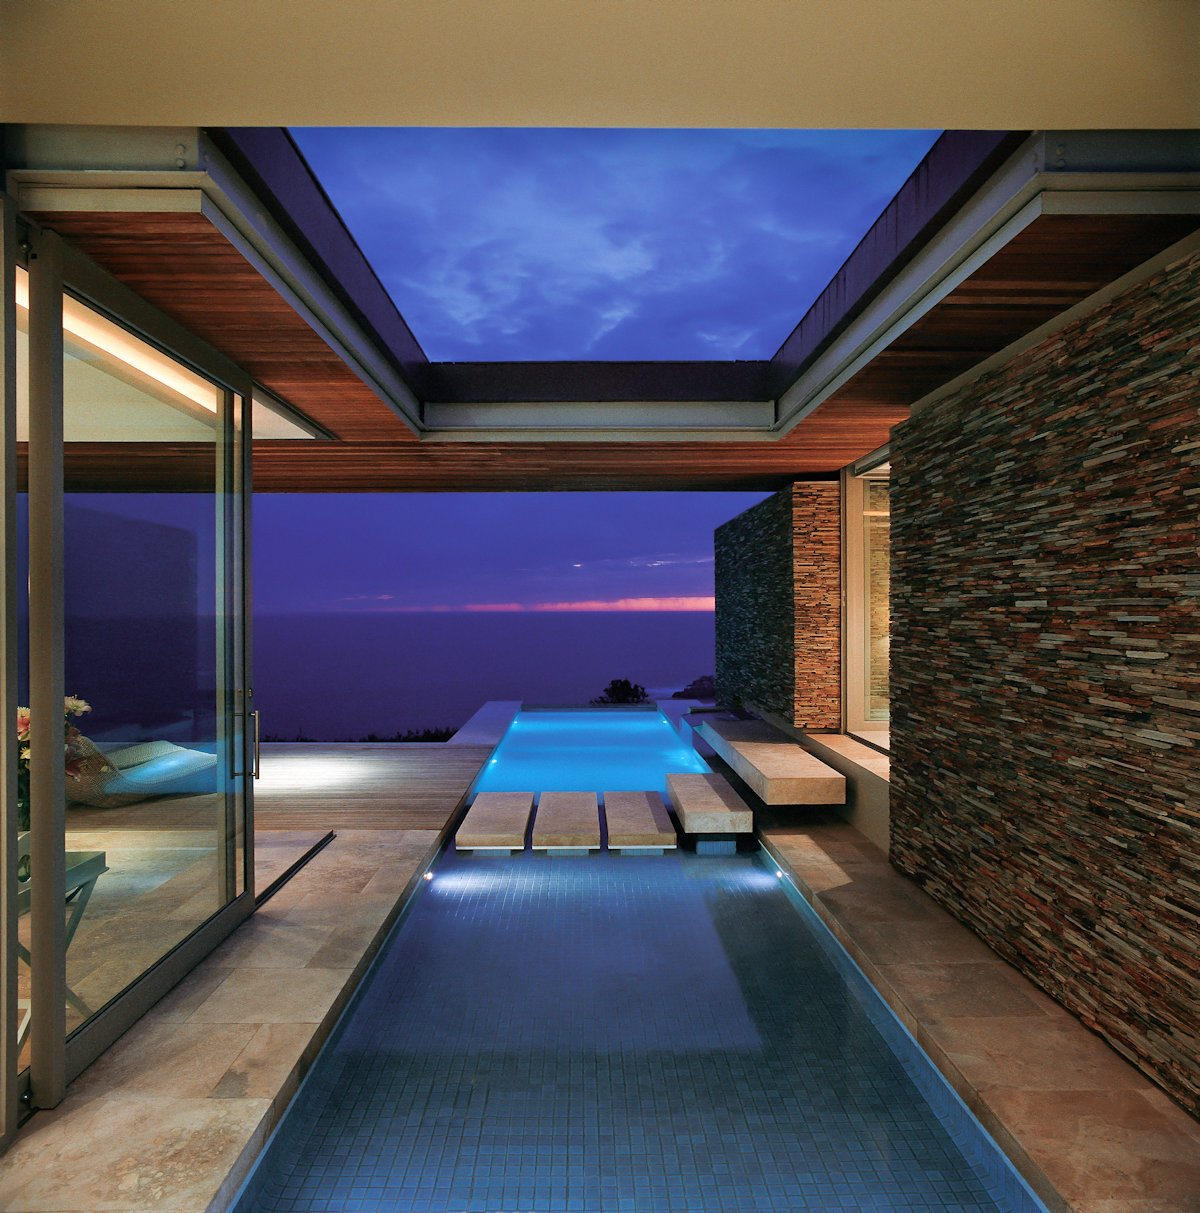 Pool, Bridge, Stone Wall, Glass Sliding Doors, Cliff Top Home in Knyzna, South Africa